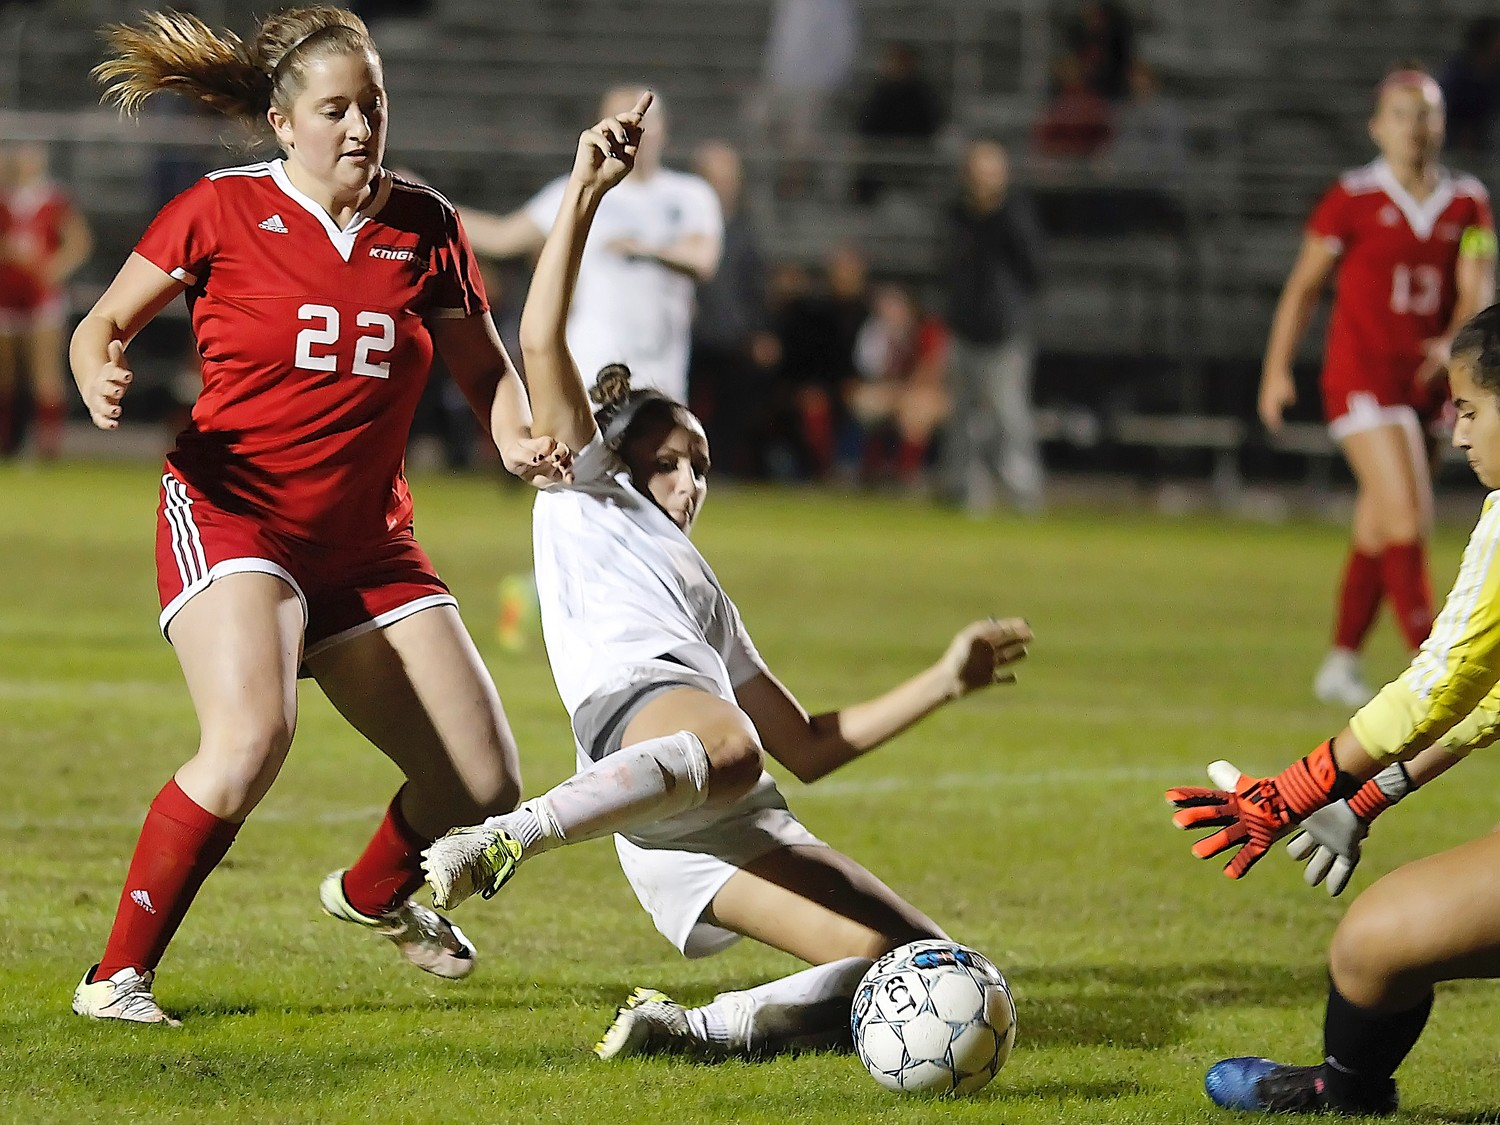 Piper Dotsikas fights to control the ball in front of the Creekside goal.